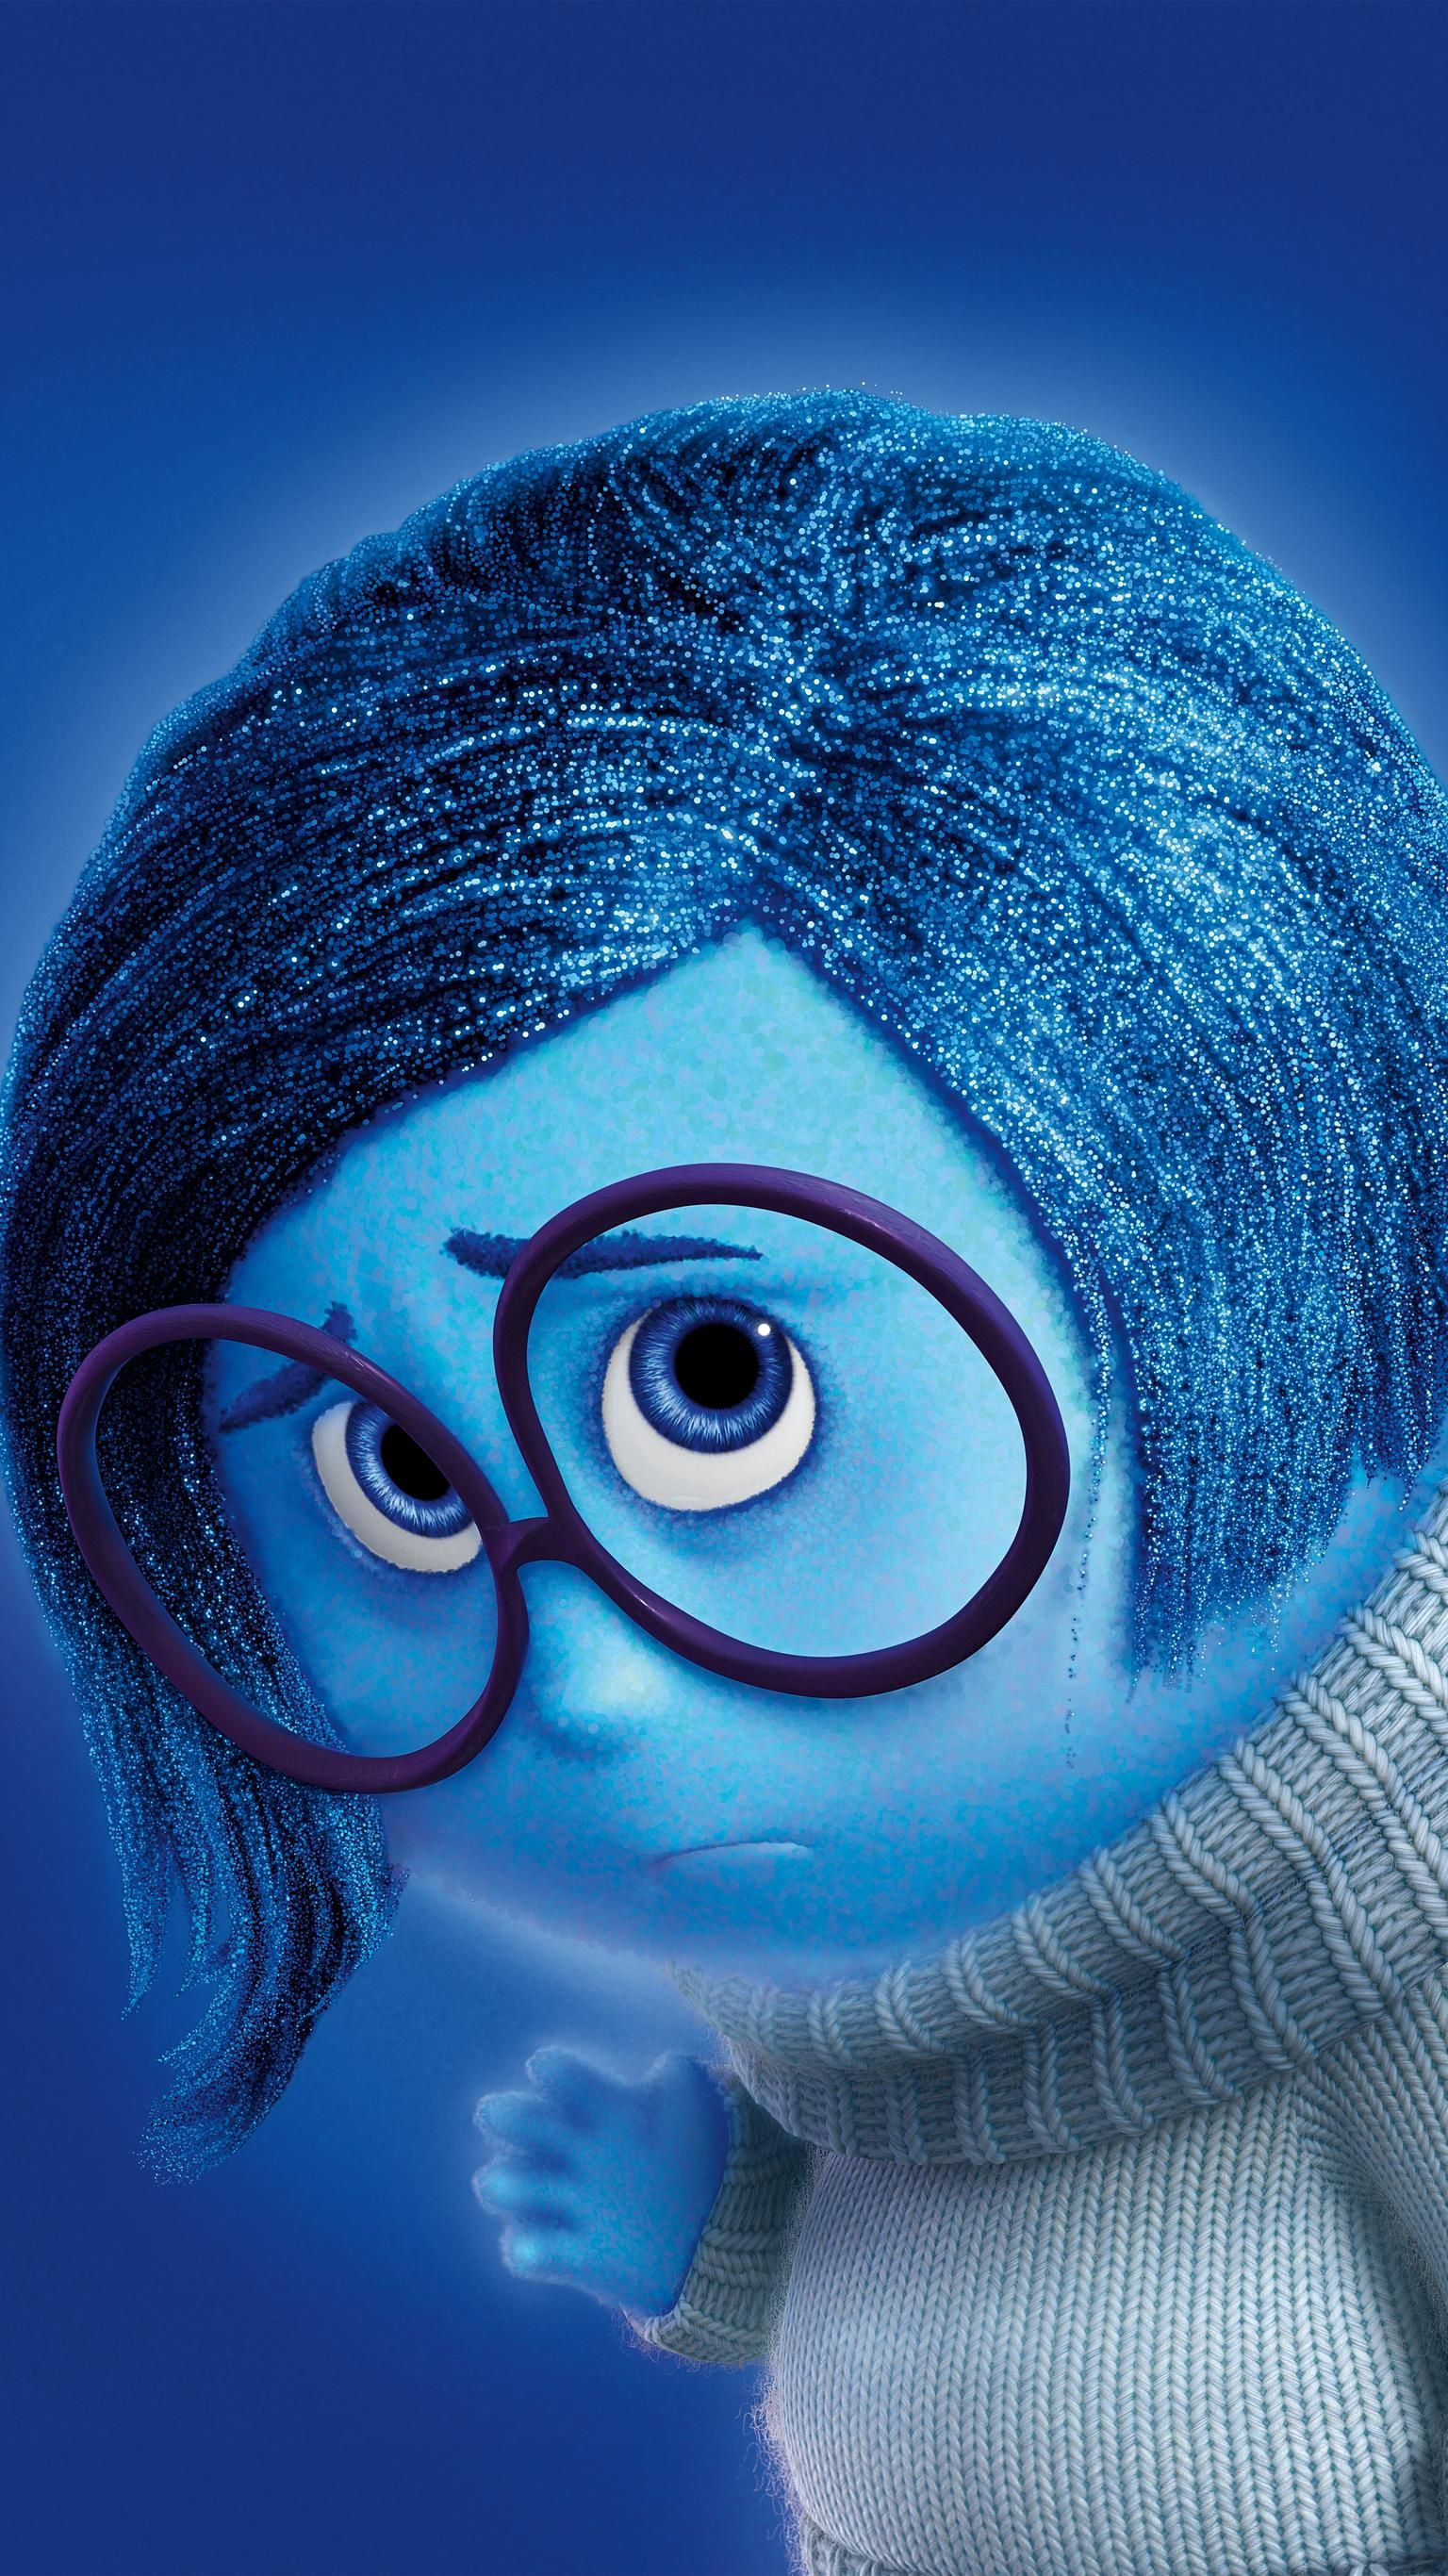 Inside Out 2015 Phone Wallpaper Moviemania Disney Desktop Wallpaper Disney Wallpaper Disney Inside Out